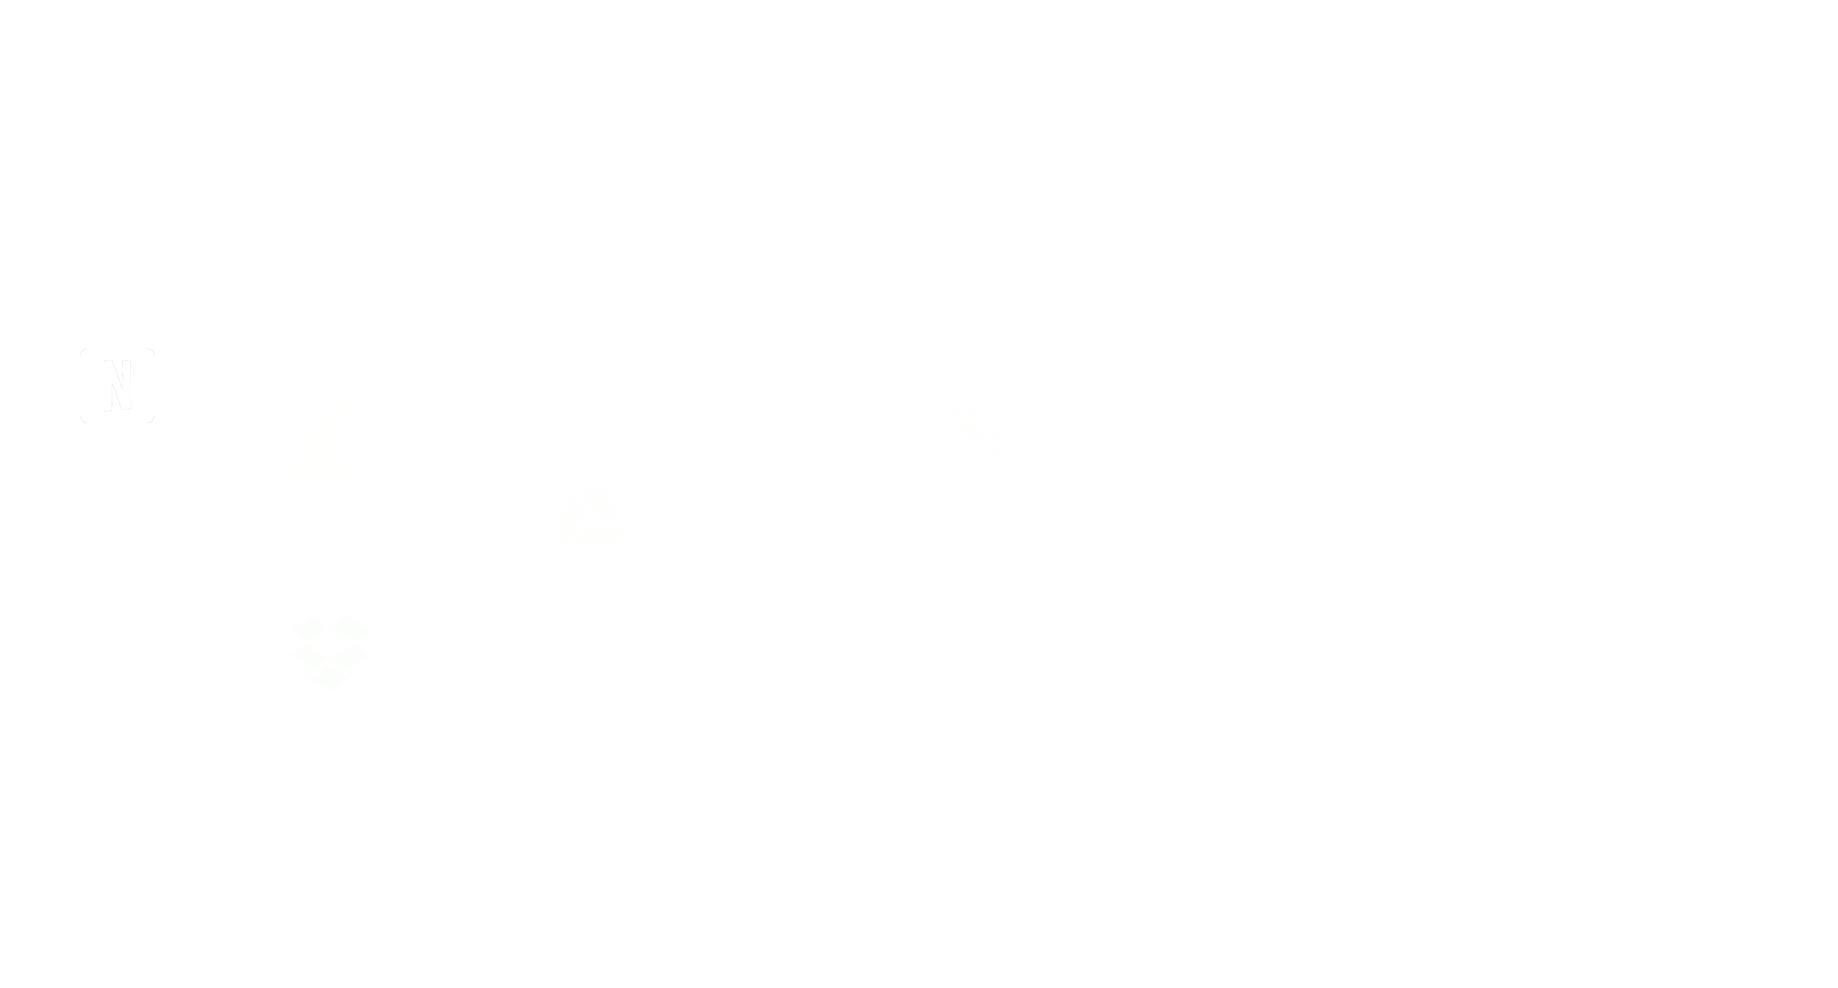 Sydney Computing Society, supported by USU